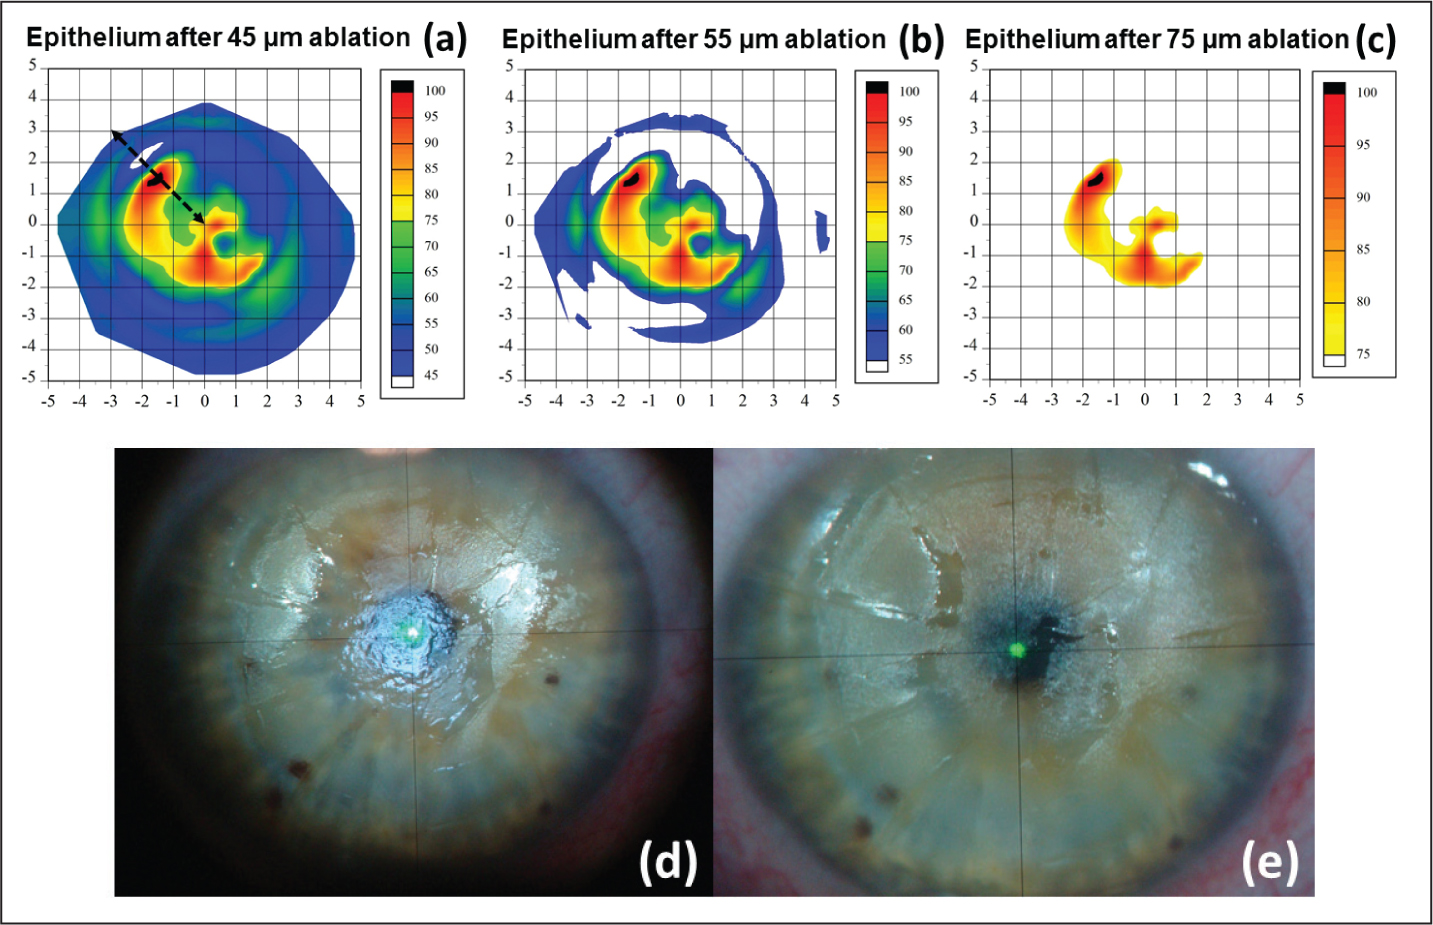 Artemis digital subtraction pachymetry simulation (ArcScan, Inc., Morrison, CO) of the pattern of remaining epithelium that would be expected after increasing transepithelial phototherapeutic keratectomy (TE-PTK) ablations after (A) 45 μm, (B) 55 μm, and (C) 75 μm. The white represents the regions where all of the epithelium would have been ablated after the labeled TE-PTK ablation, and hence the regions where ablation of stromal tissue would occur. During the procedure, the cornea was examined (as shown in the intraoperative photograph, [D]) and the areas of exposed stroma were compared to the Artemis simulated maps. At this point, the ablation depth for the subsequent TE-PTK ablations can be calibrated for each eye individually. Further TE-PTK ablations are then performed in a stepwise fashion until the intended end-point is reached. (E) The intraoperative photograph in this example shows the pattern of remaining epithelium was similar to the predicted pattern.